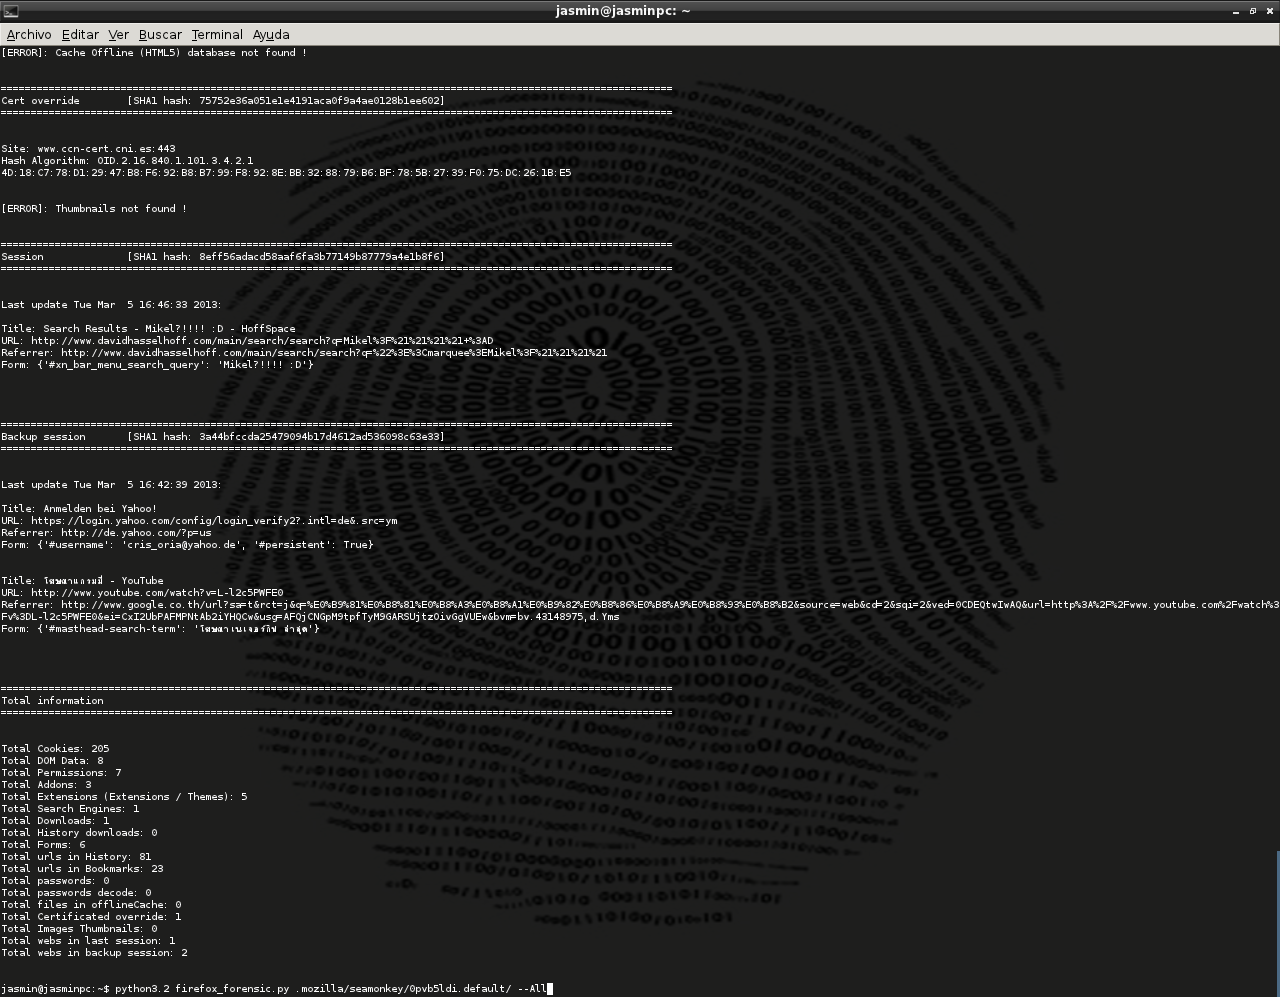 Dumpzilla - Extract All Forensic Interesting Information Of